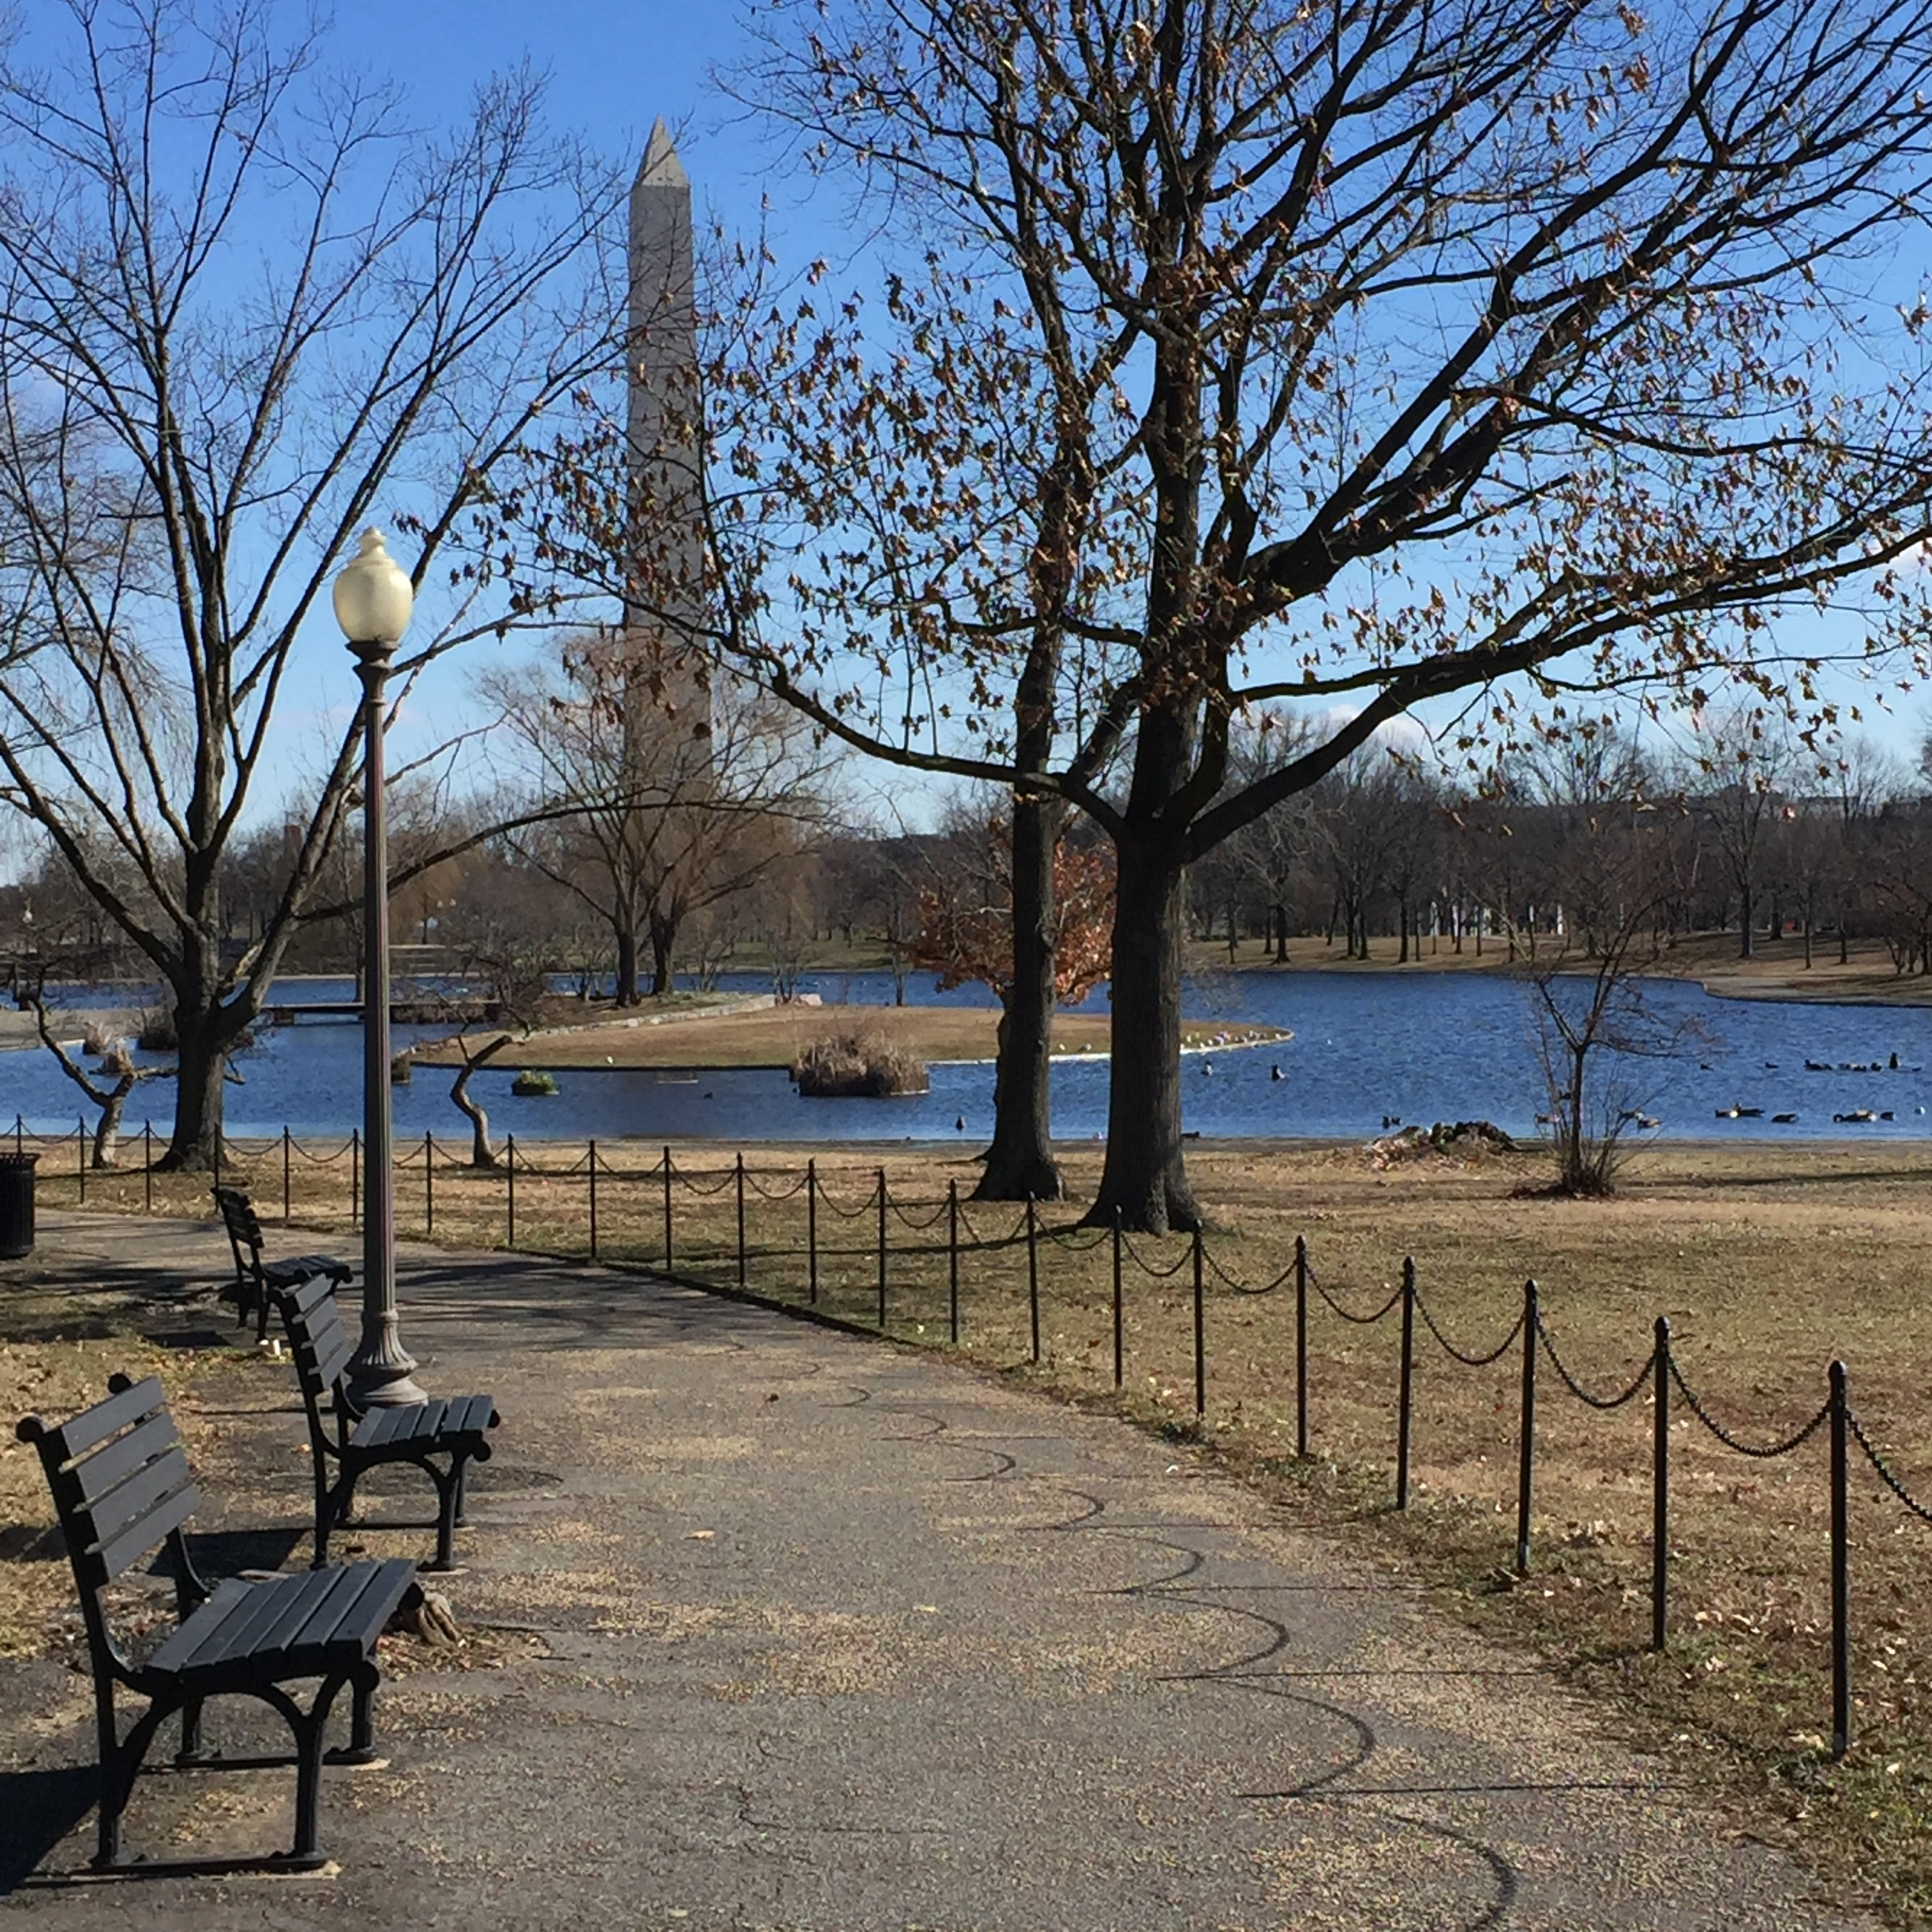 Washington, DC: a freezing cold day in January, 2016... before starting this blog in March, 2016